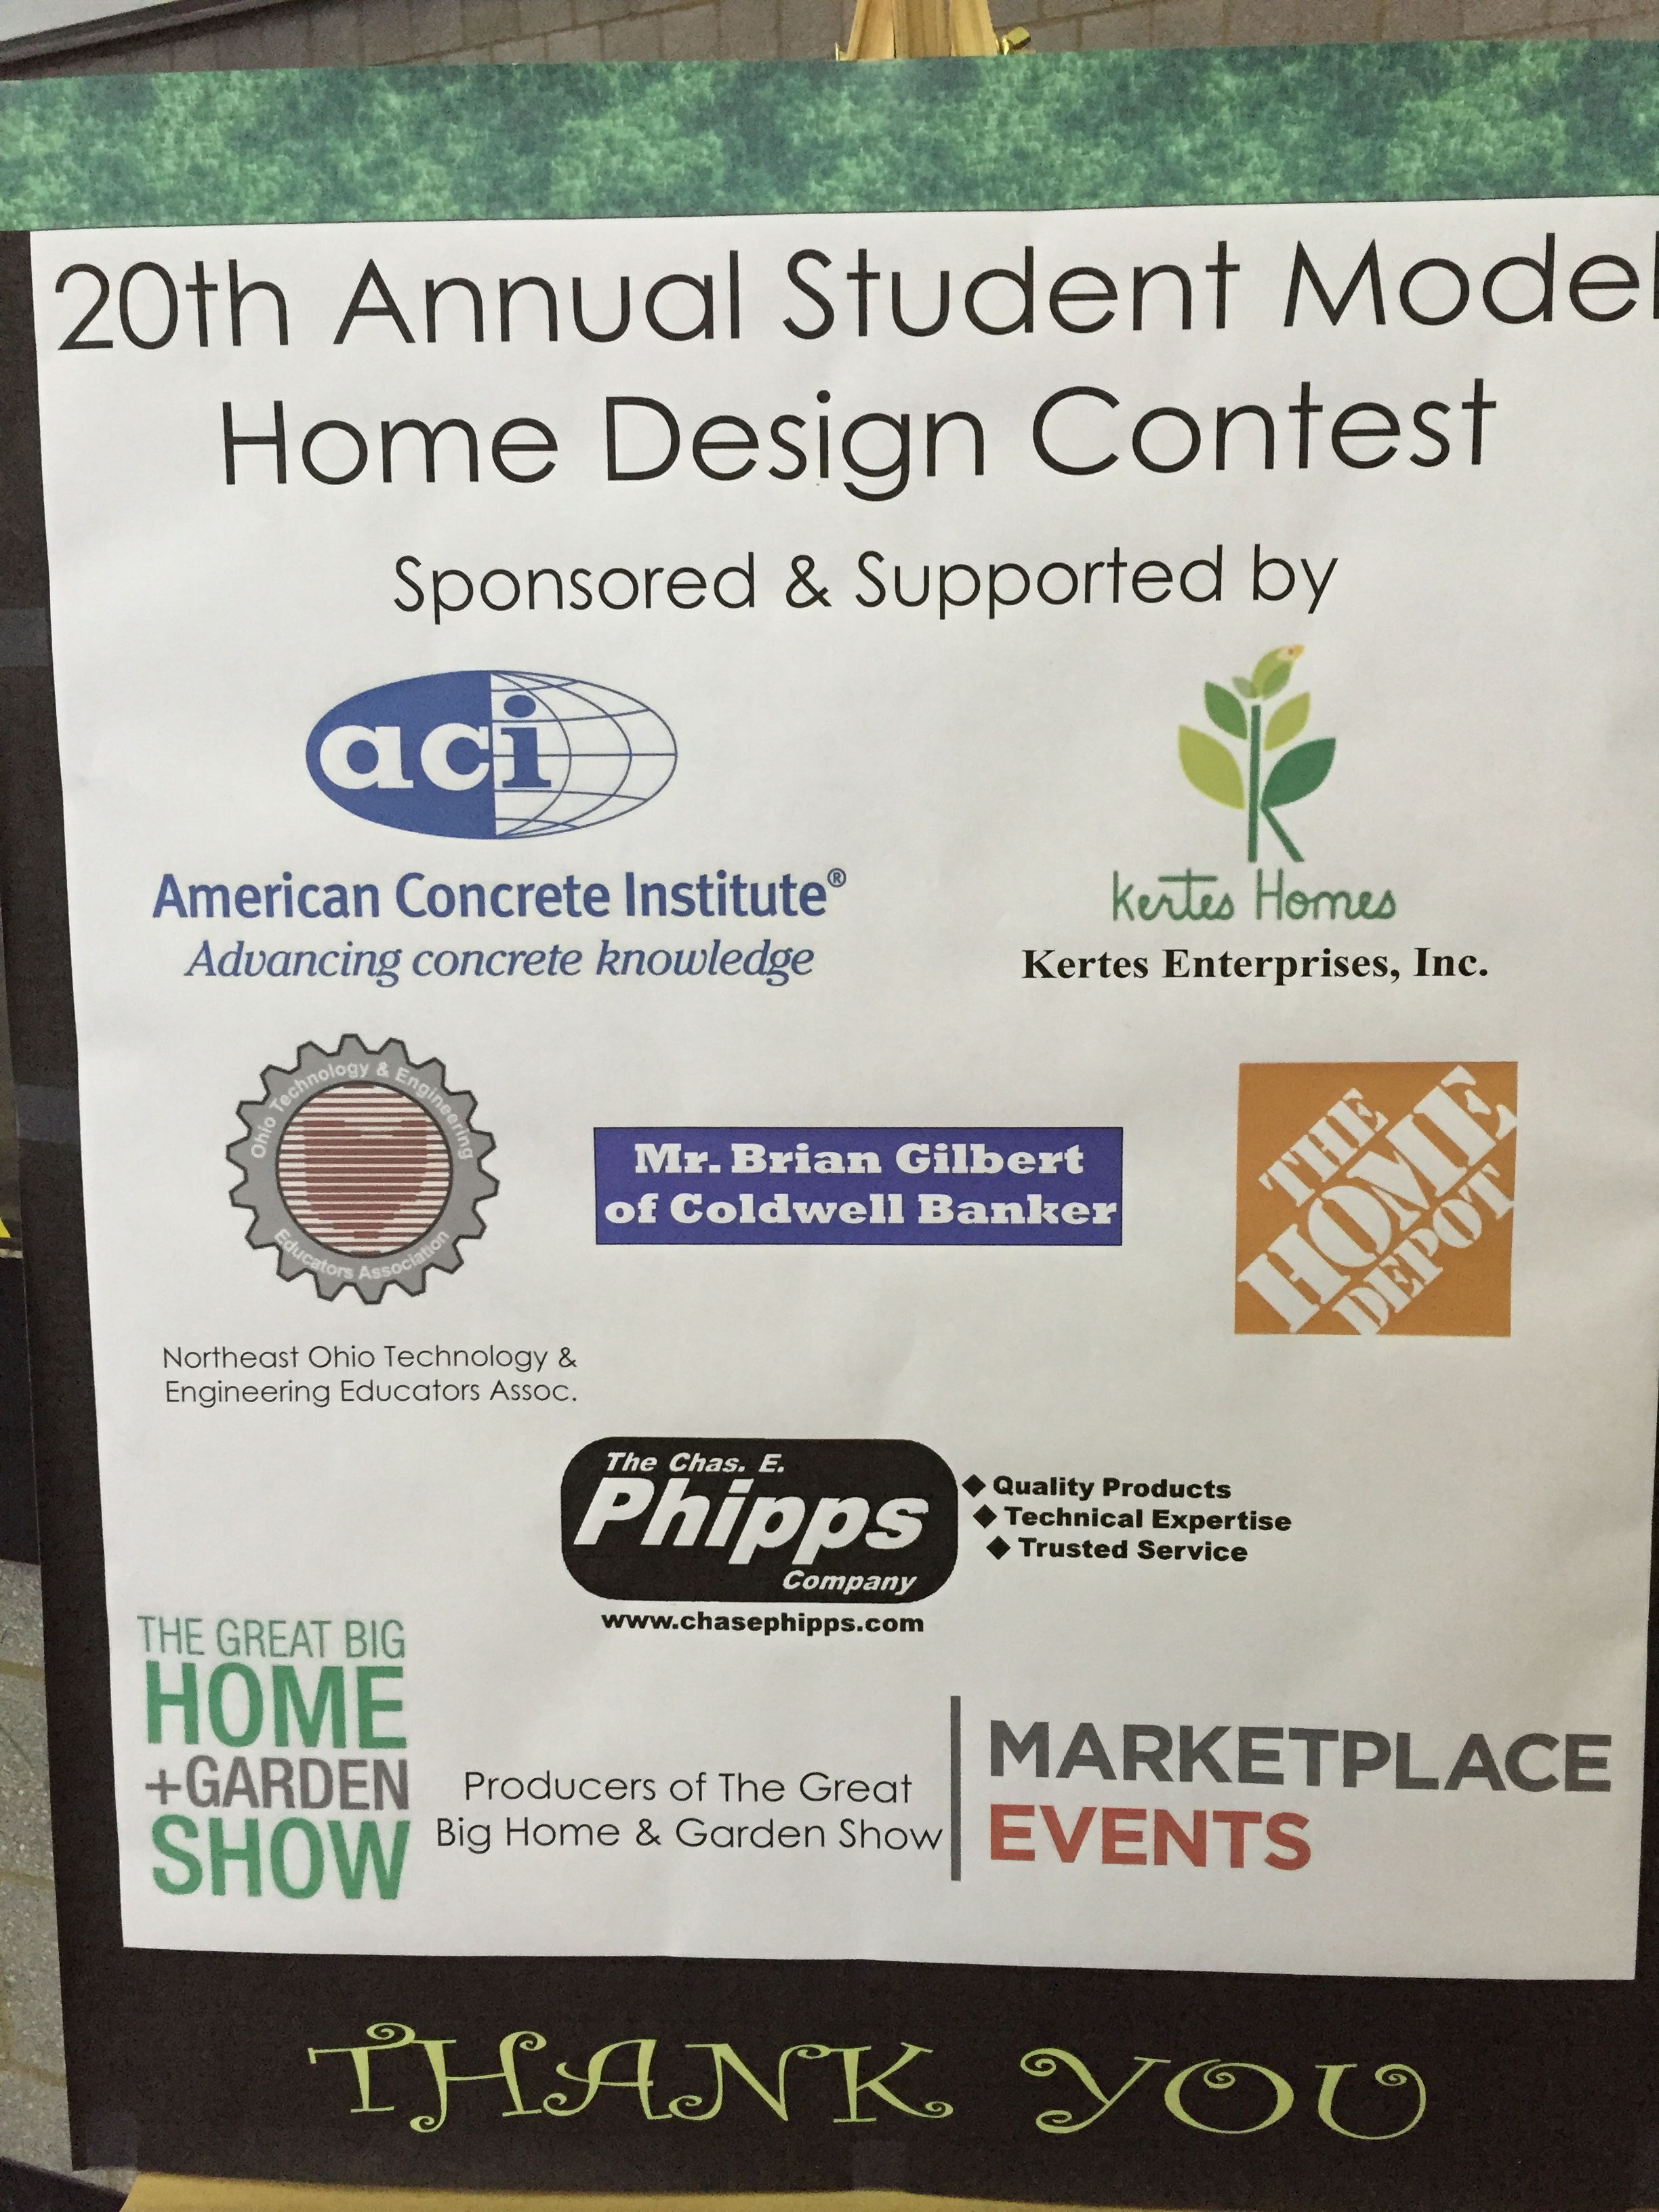 Sponsors of the 2017 Student Model Home Design Contest.